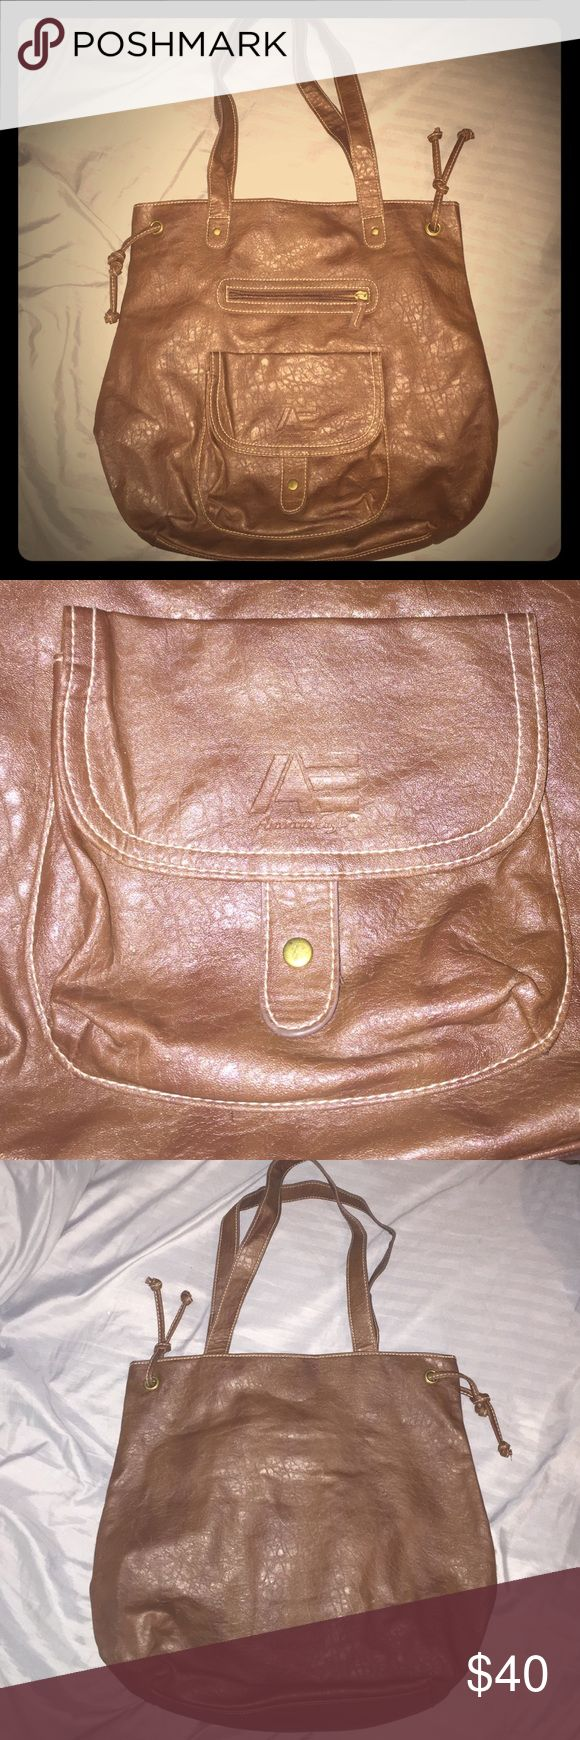 American eagle brown faux leather tote bag This brown leather American Eagle tote bag is in almost perfect condition. Nothing visibly at all wrong with this bag. Two pockets on the front for easy access things. Big compartment on the inside with two small pockets for you their cell phone or whatever you might want to use it for, One small zipper pocket inside and of course the big compartment. This bag has a Velcro closure pretty much perfect. American Eagle Outfitters Bags Totes